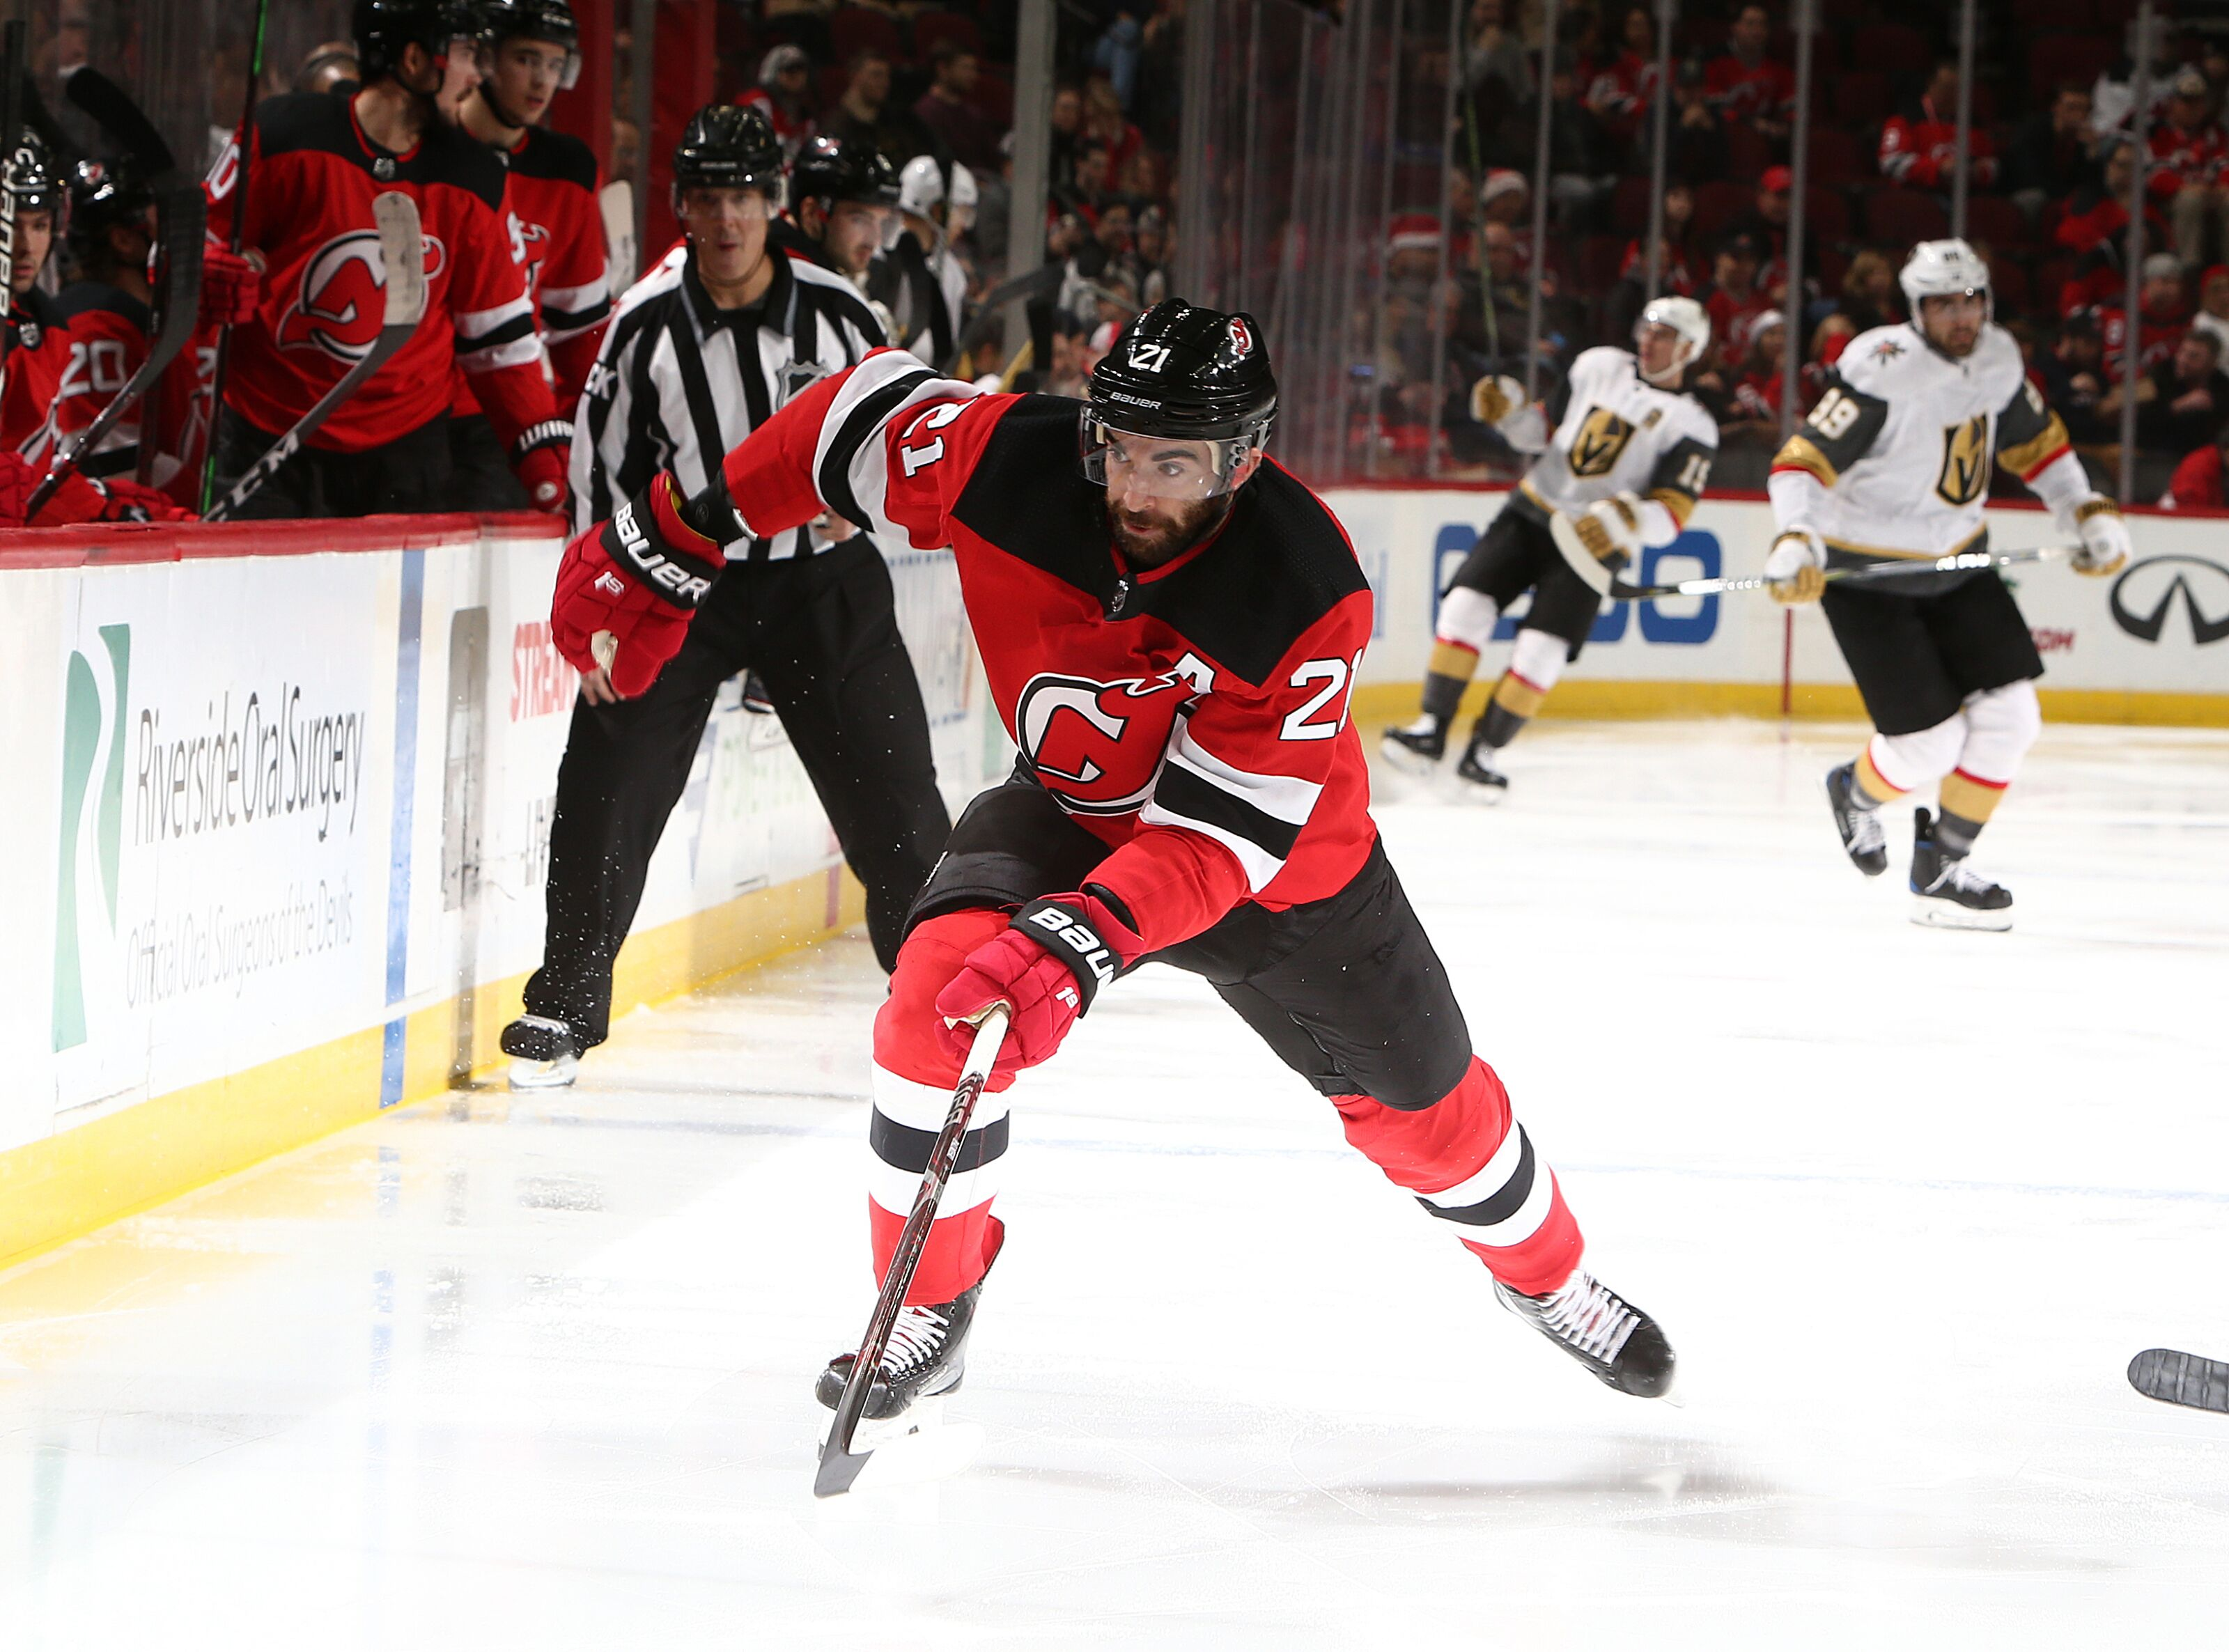 b67a9a343d2 New Jersey Devils: How High Can Kyle Palmieri Go?